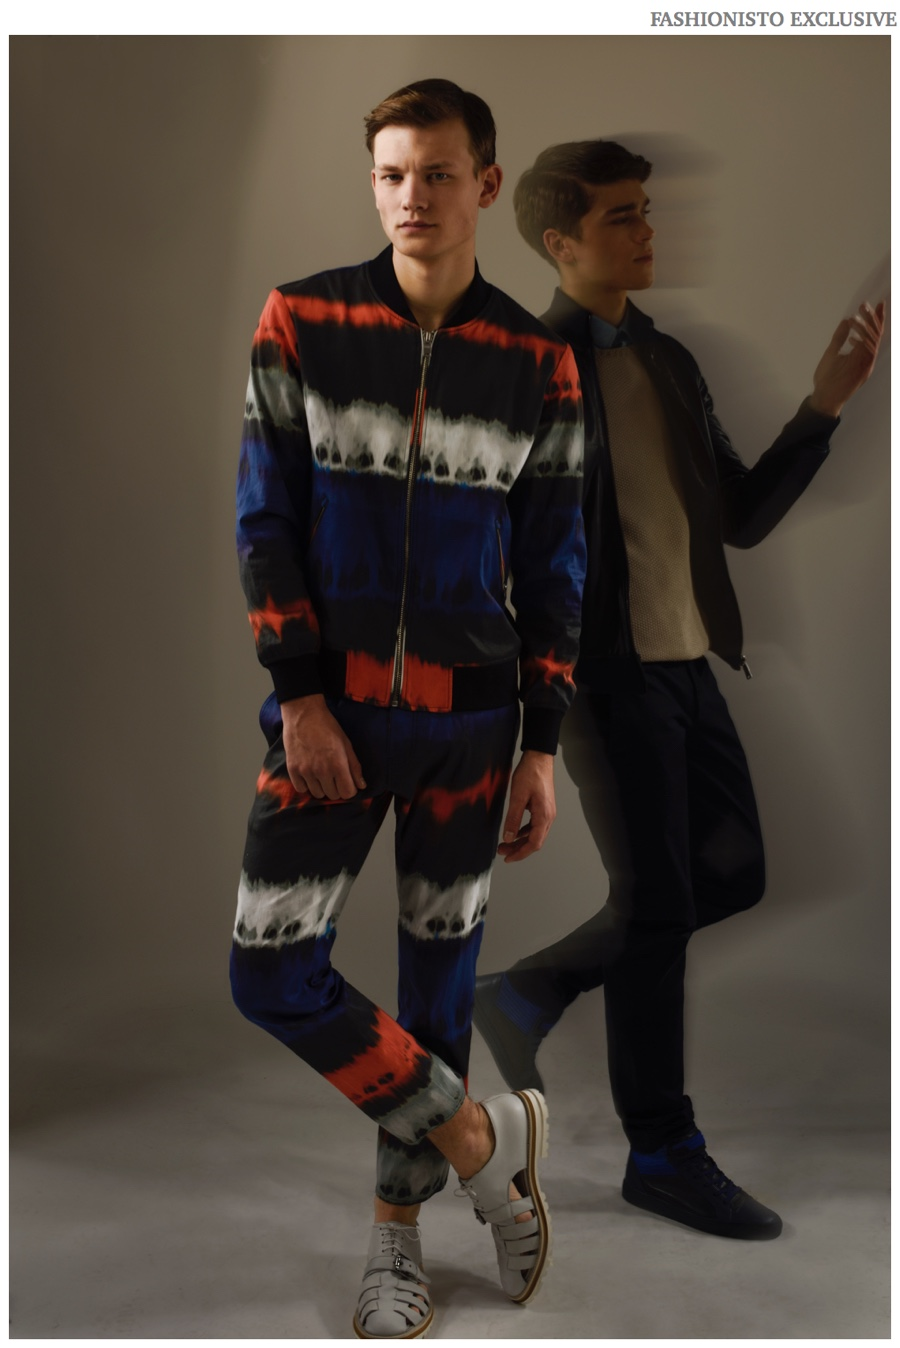 Fashionisto Exclusive: John Wesselingh & Gonzalo by Francesco Italia